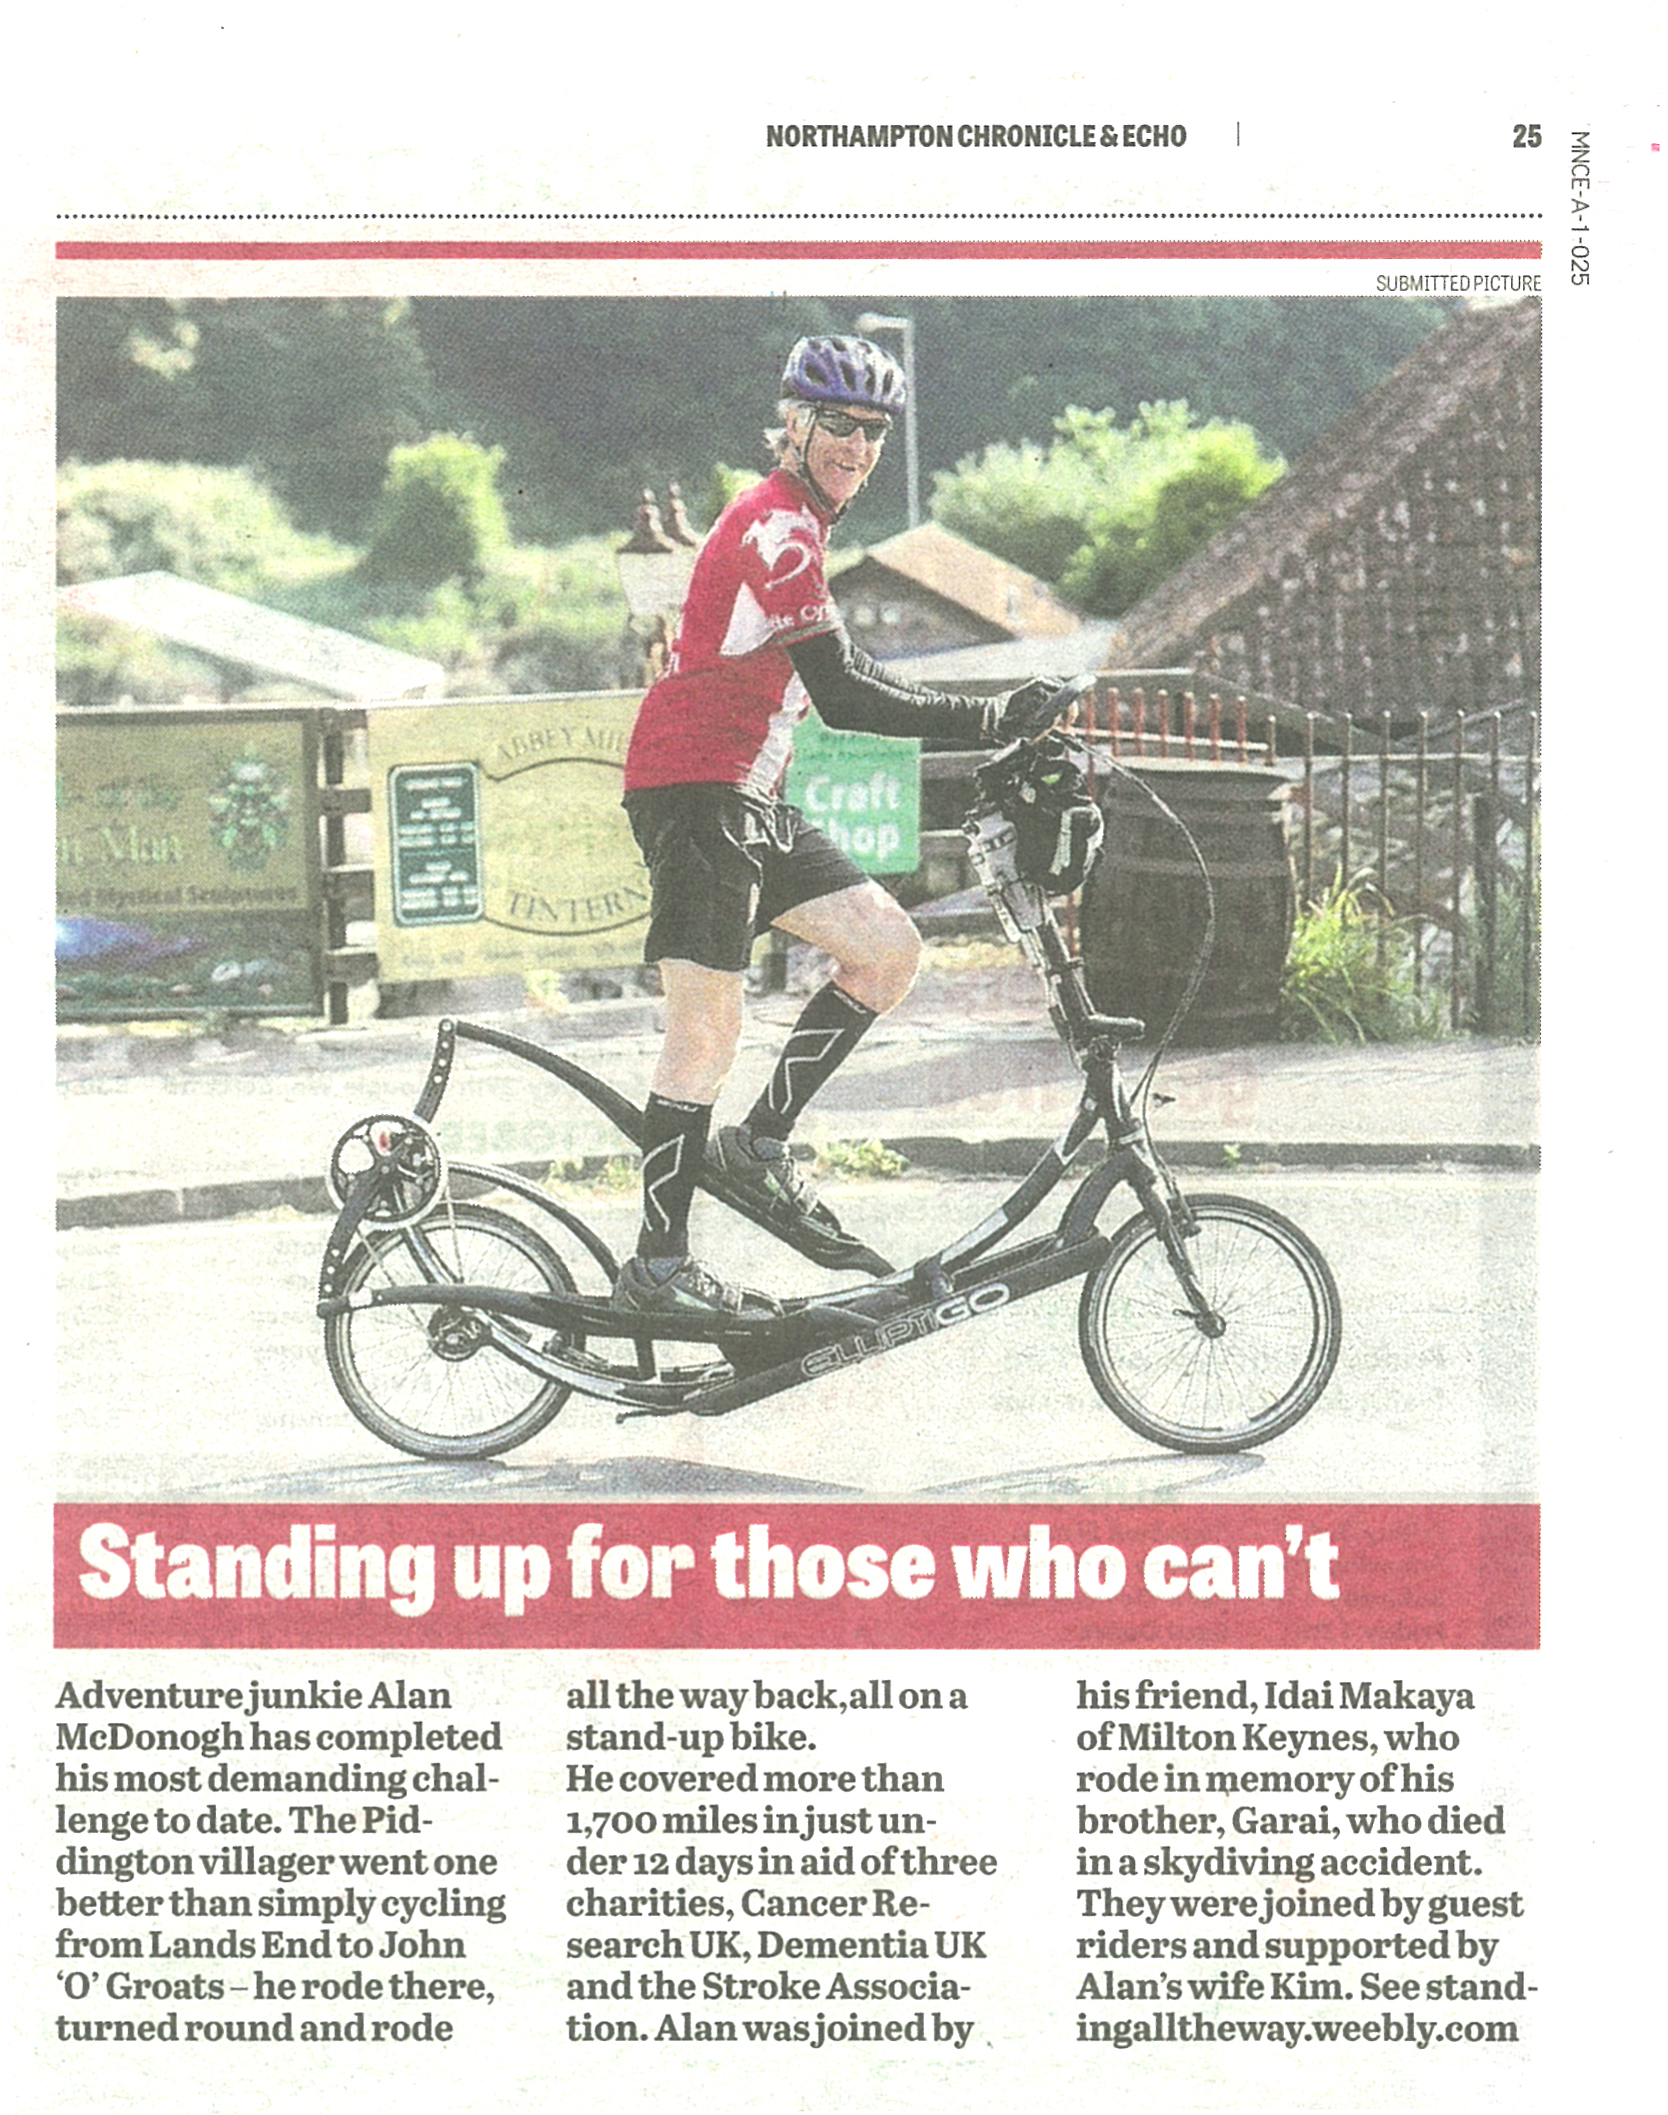 Northampton Chronicle & Echo LEJOG-JOGLE 19 July 2018 Article.